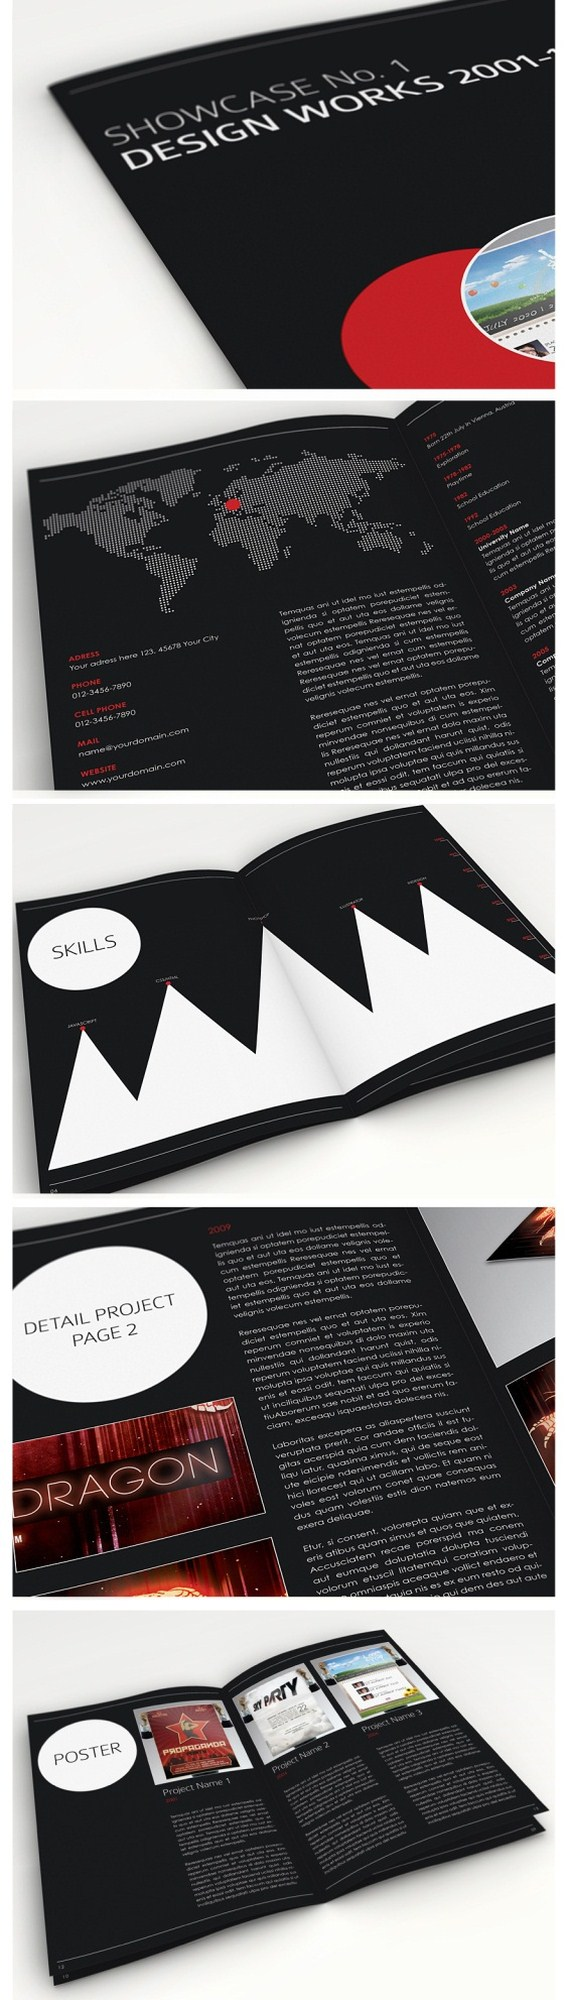 20 Awesome Brochure Designs Inspiration 54